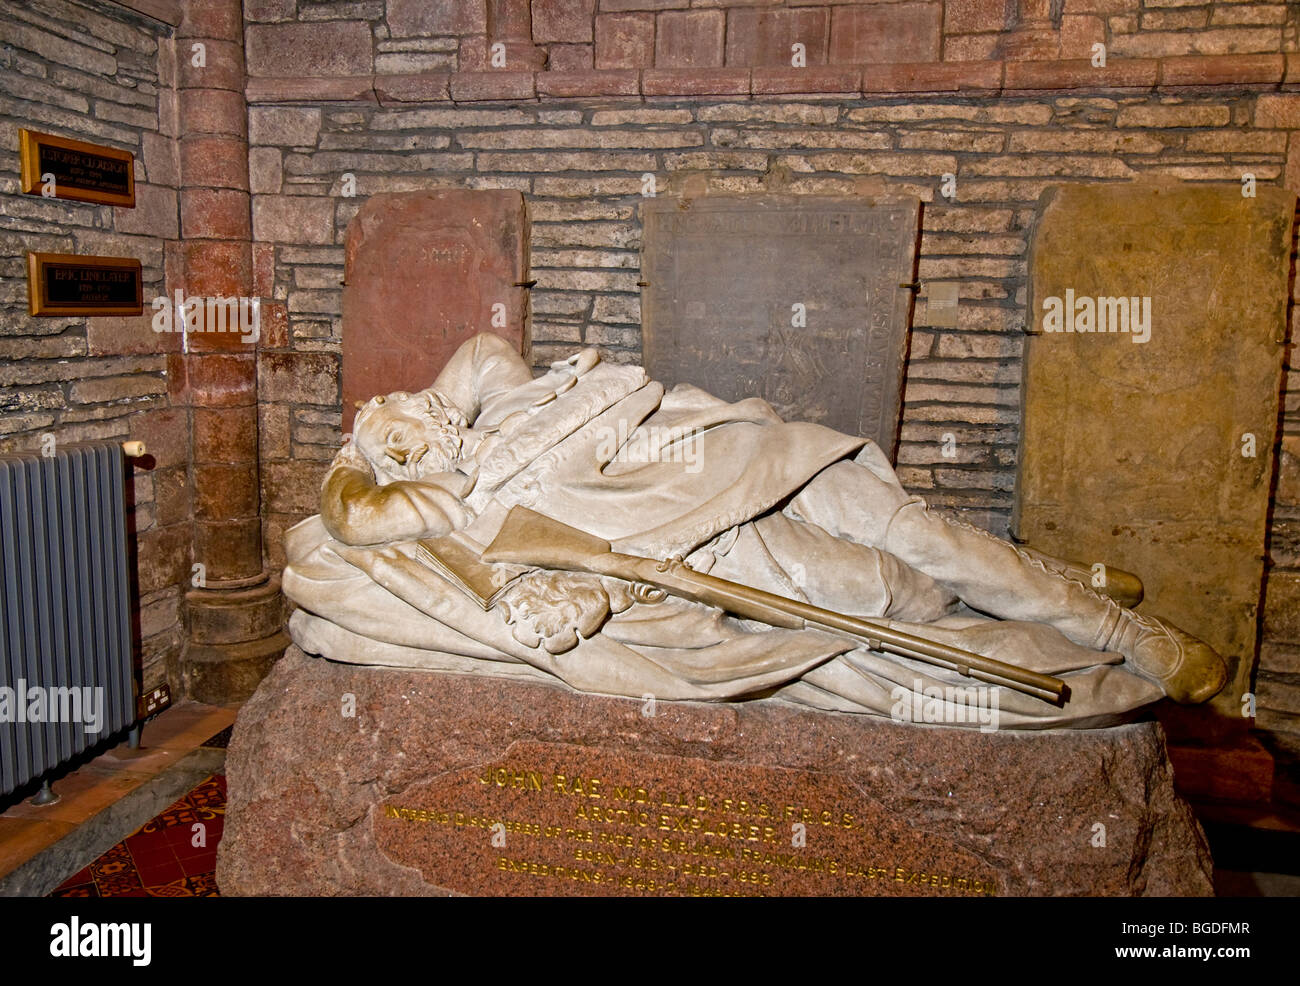 Tomb of the Arctic Explorer John Rae in the St Magnus Cathedral Kirkwall Orkney, Highland Scotland.  SCO 5656 - Stock Image